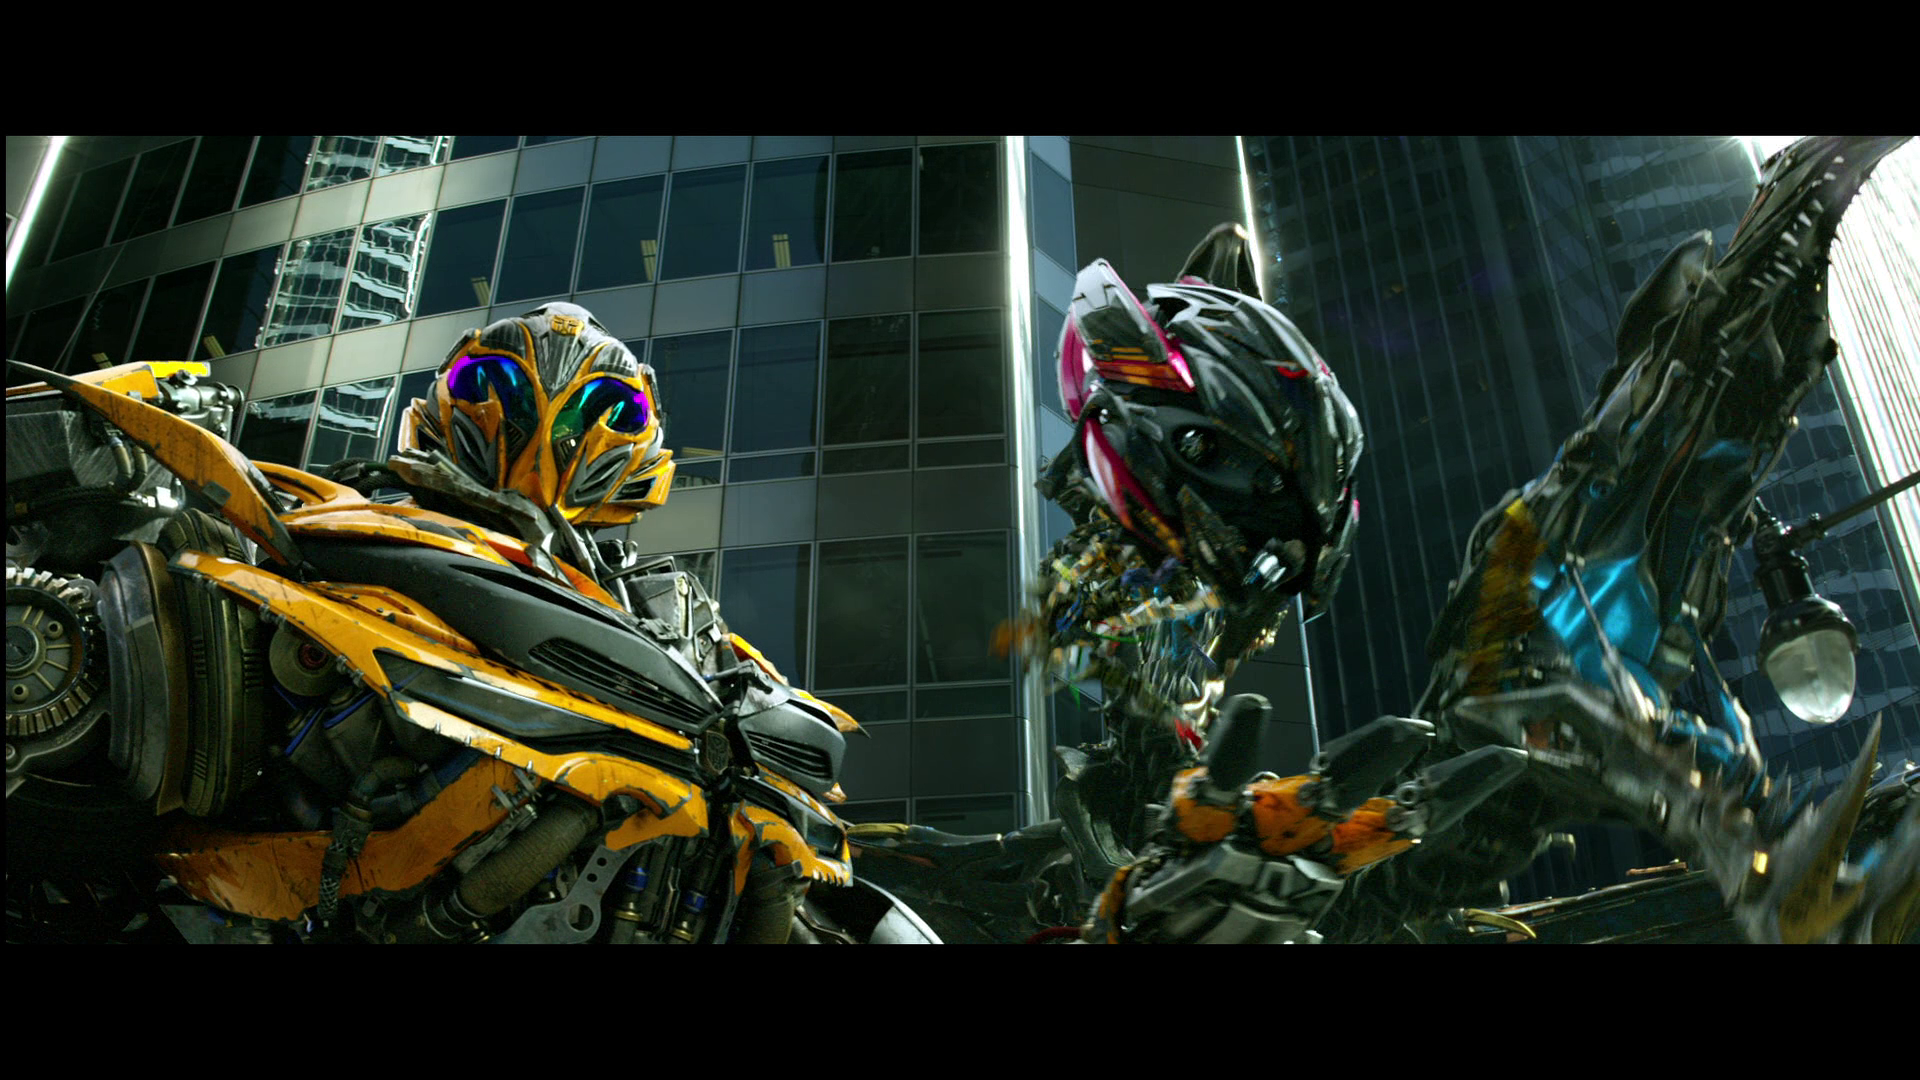 Why does Stinger's robot mode look just like Bumblebee's ... Transformers 4 Bumblebee Vs Stinger